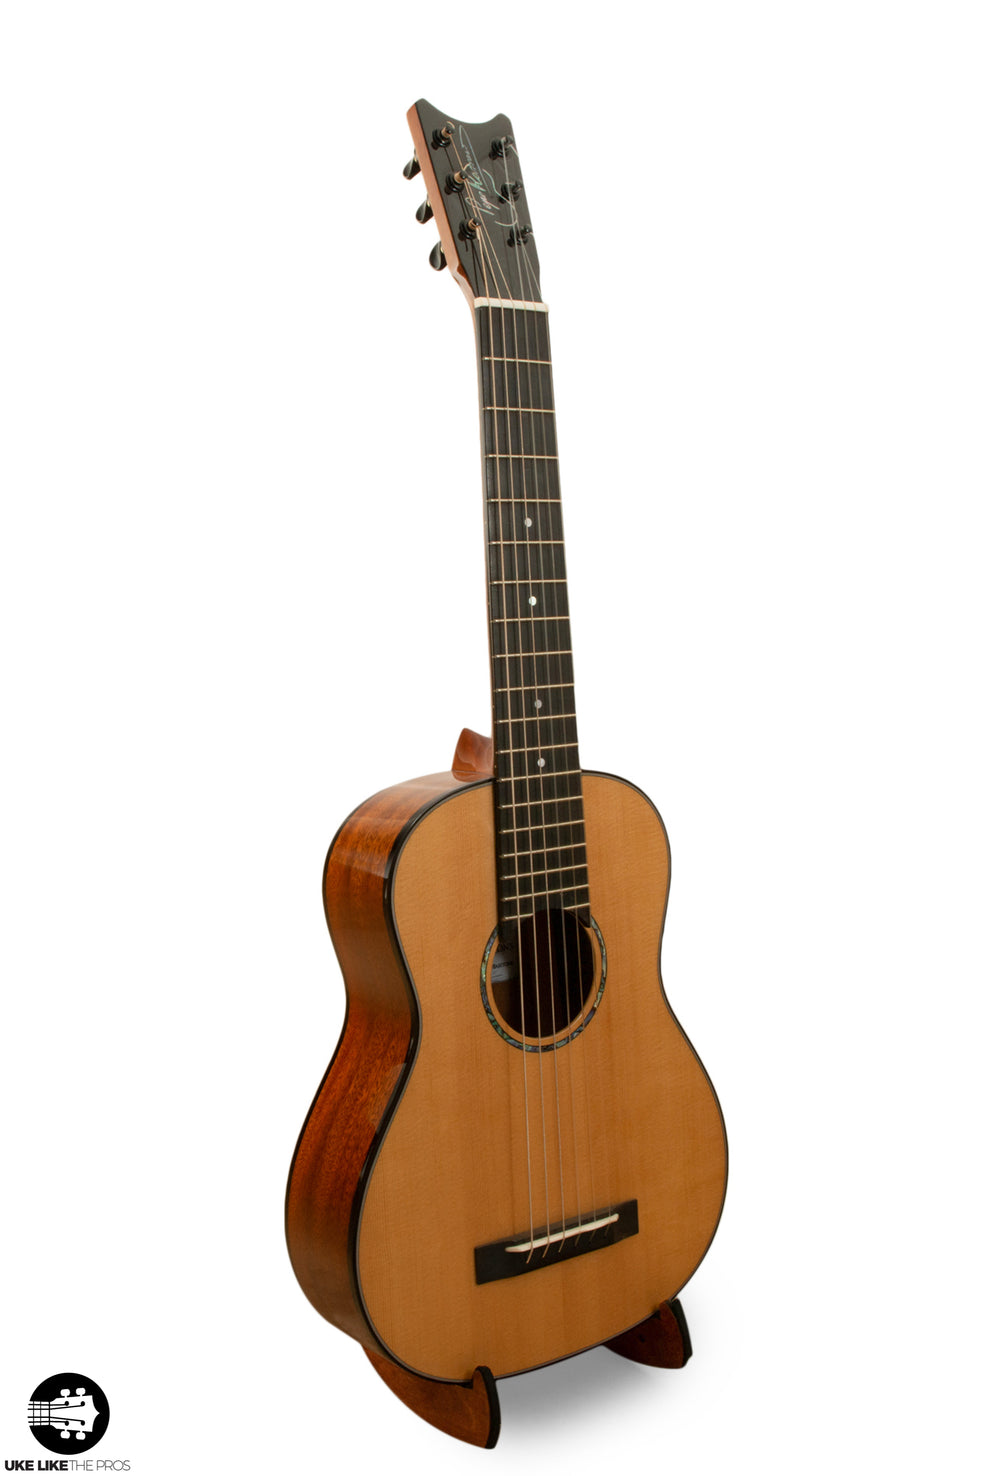 "Romero Creations 6 String Baritone Guitar/Guitarlele Nylon String RC-B6-SM ""Barramundi"" E to E Tuning"